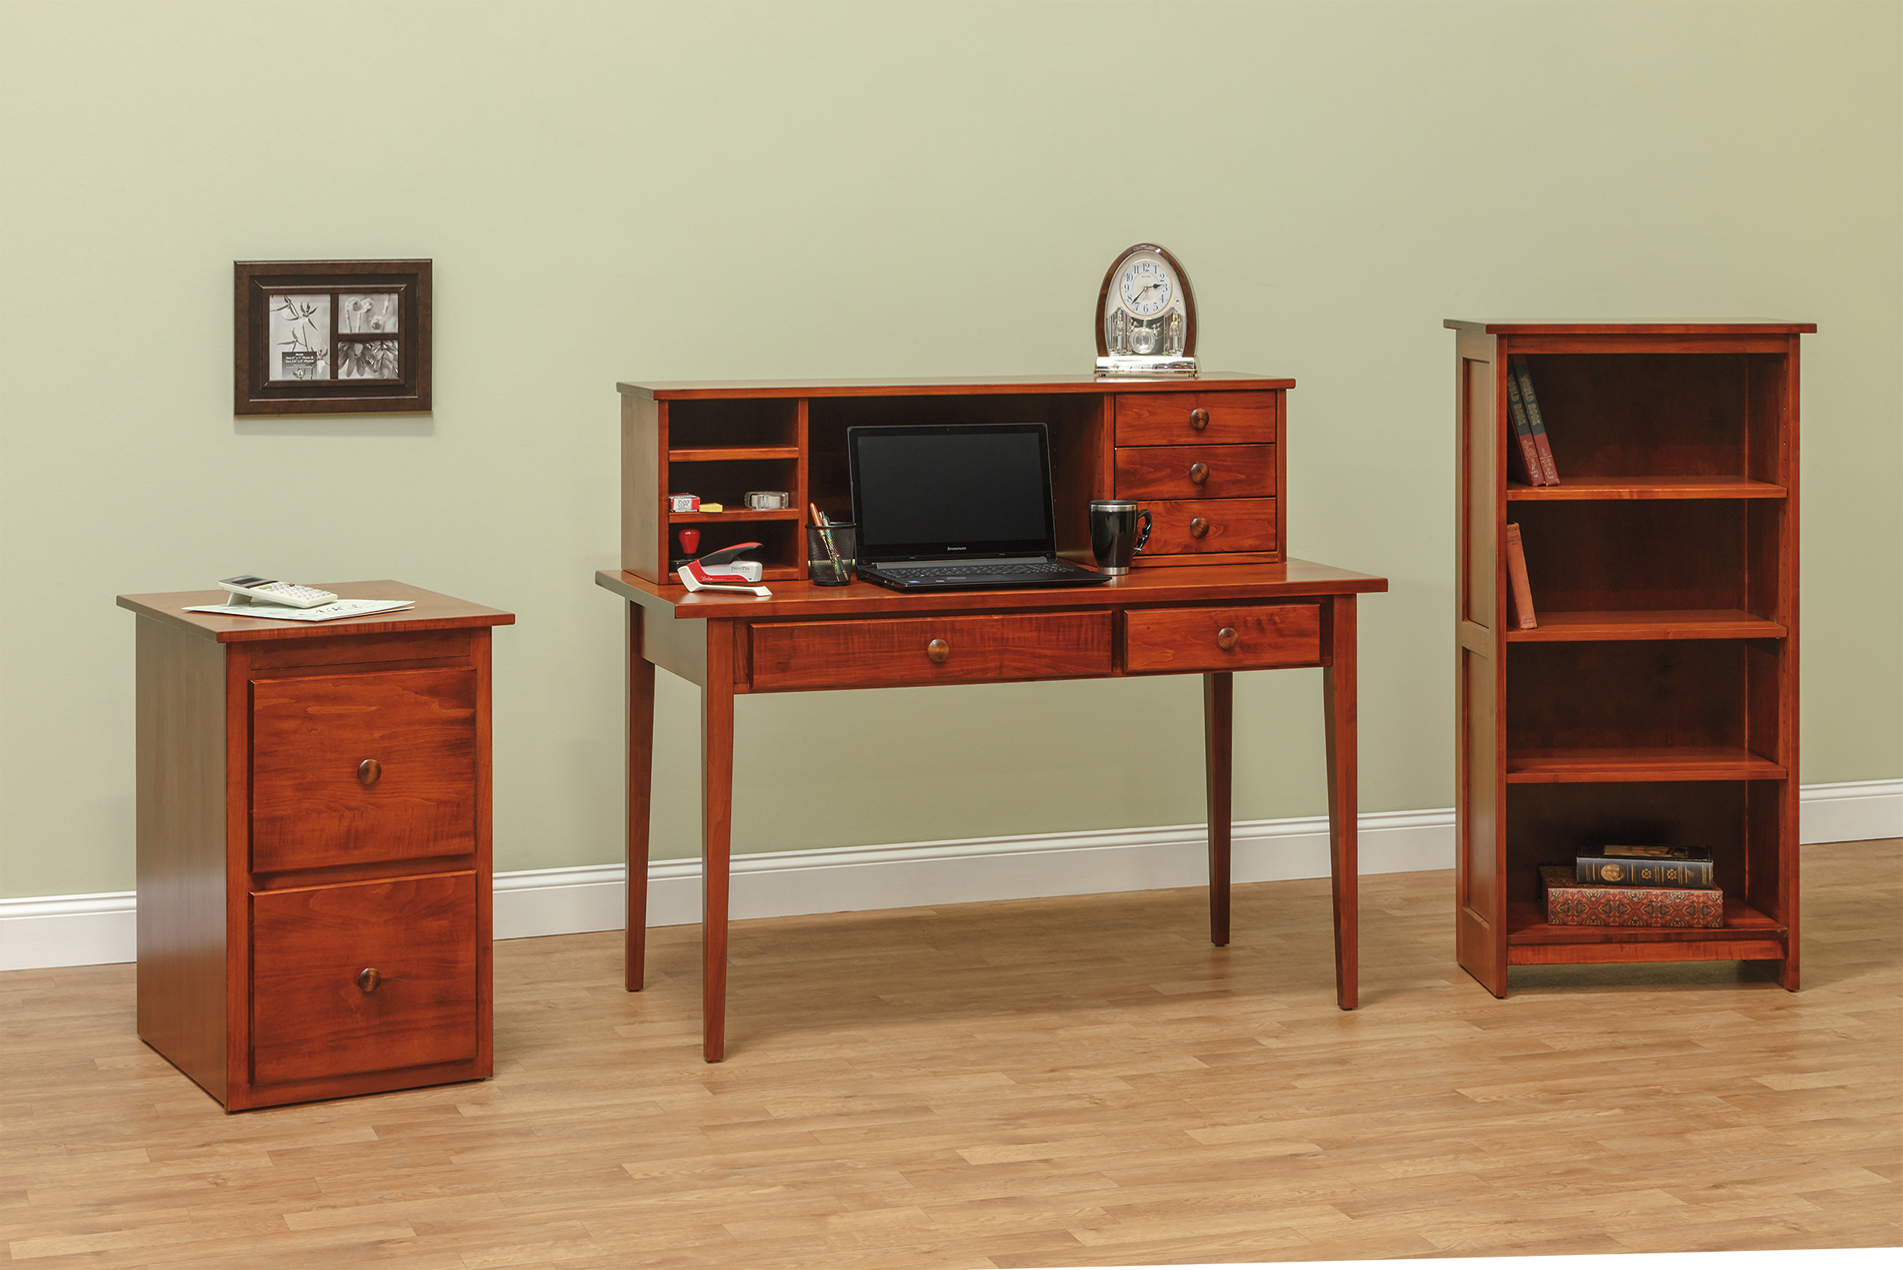 Amish Furniture And Home Furnishings Including Oak And Cherry From Harold S Oak House In Lancaster County Pa Area